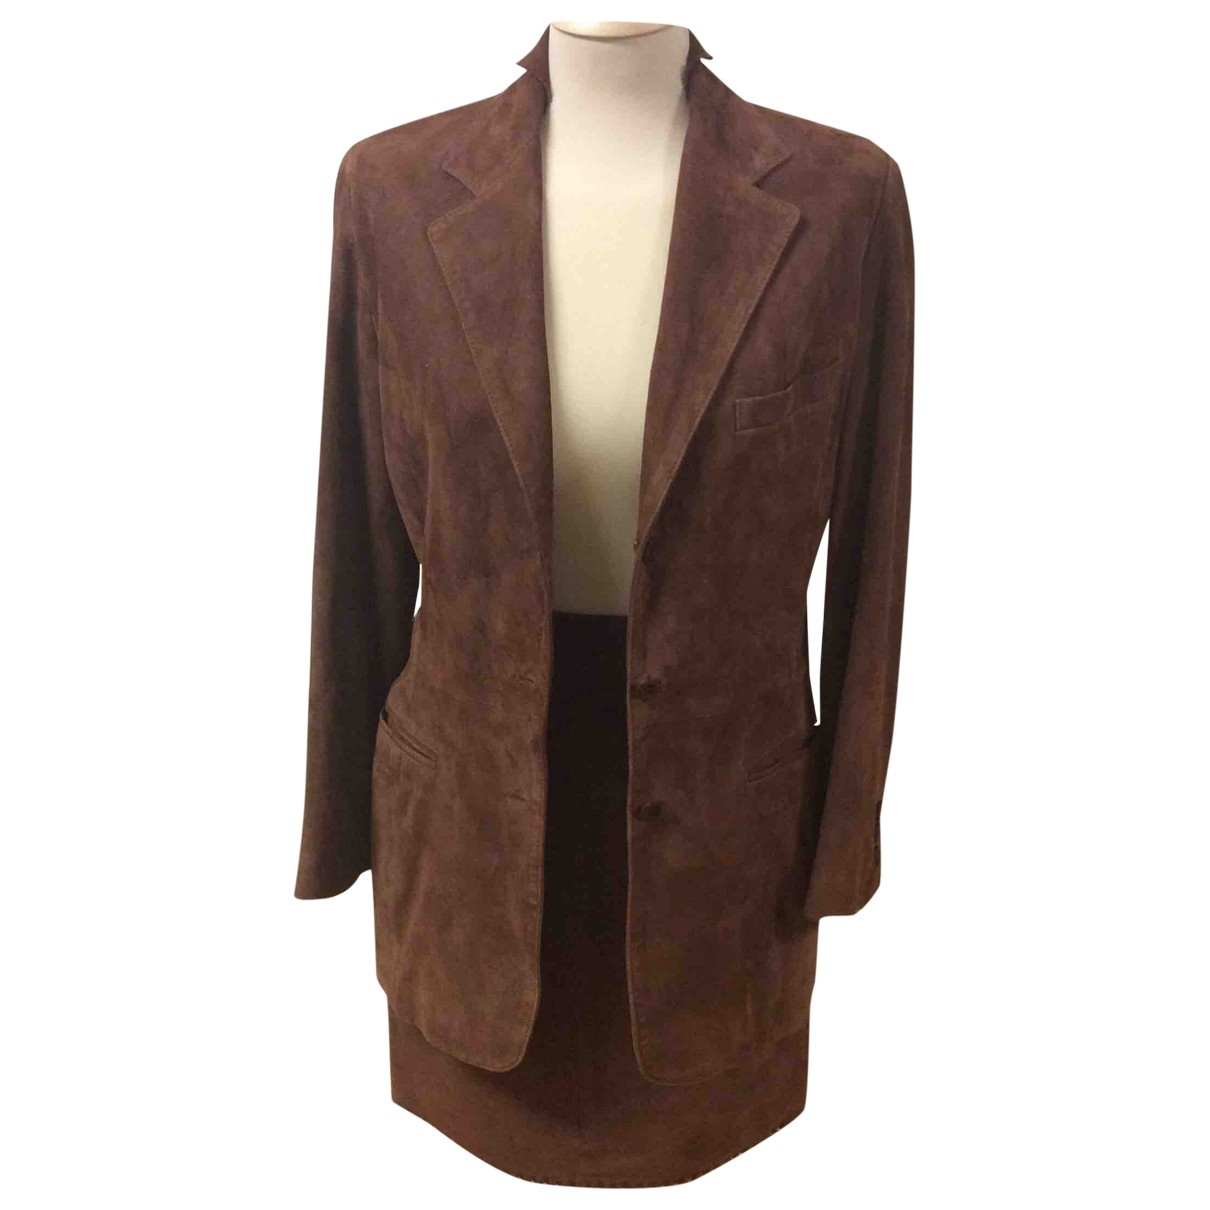 Mabrun \N Brown Suede Leather jacket for Women 42 IT